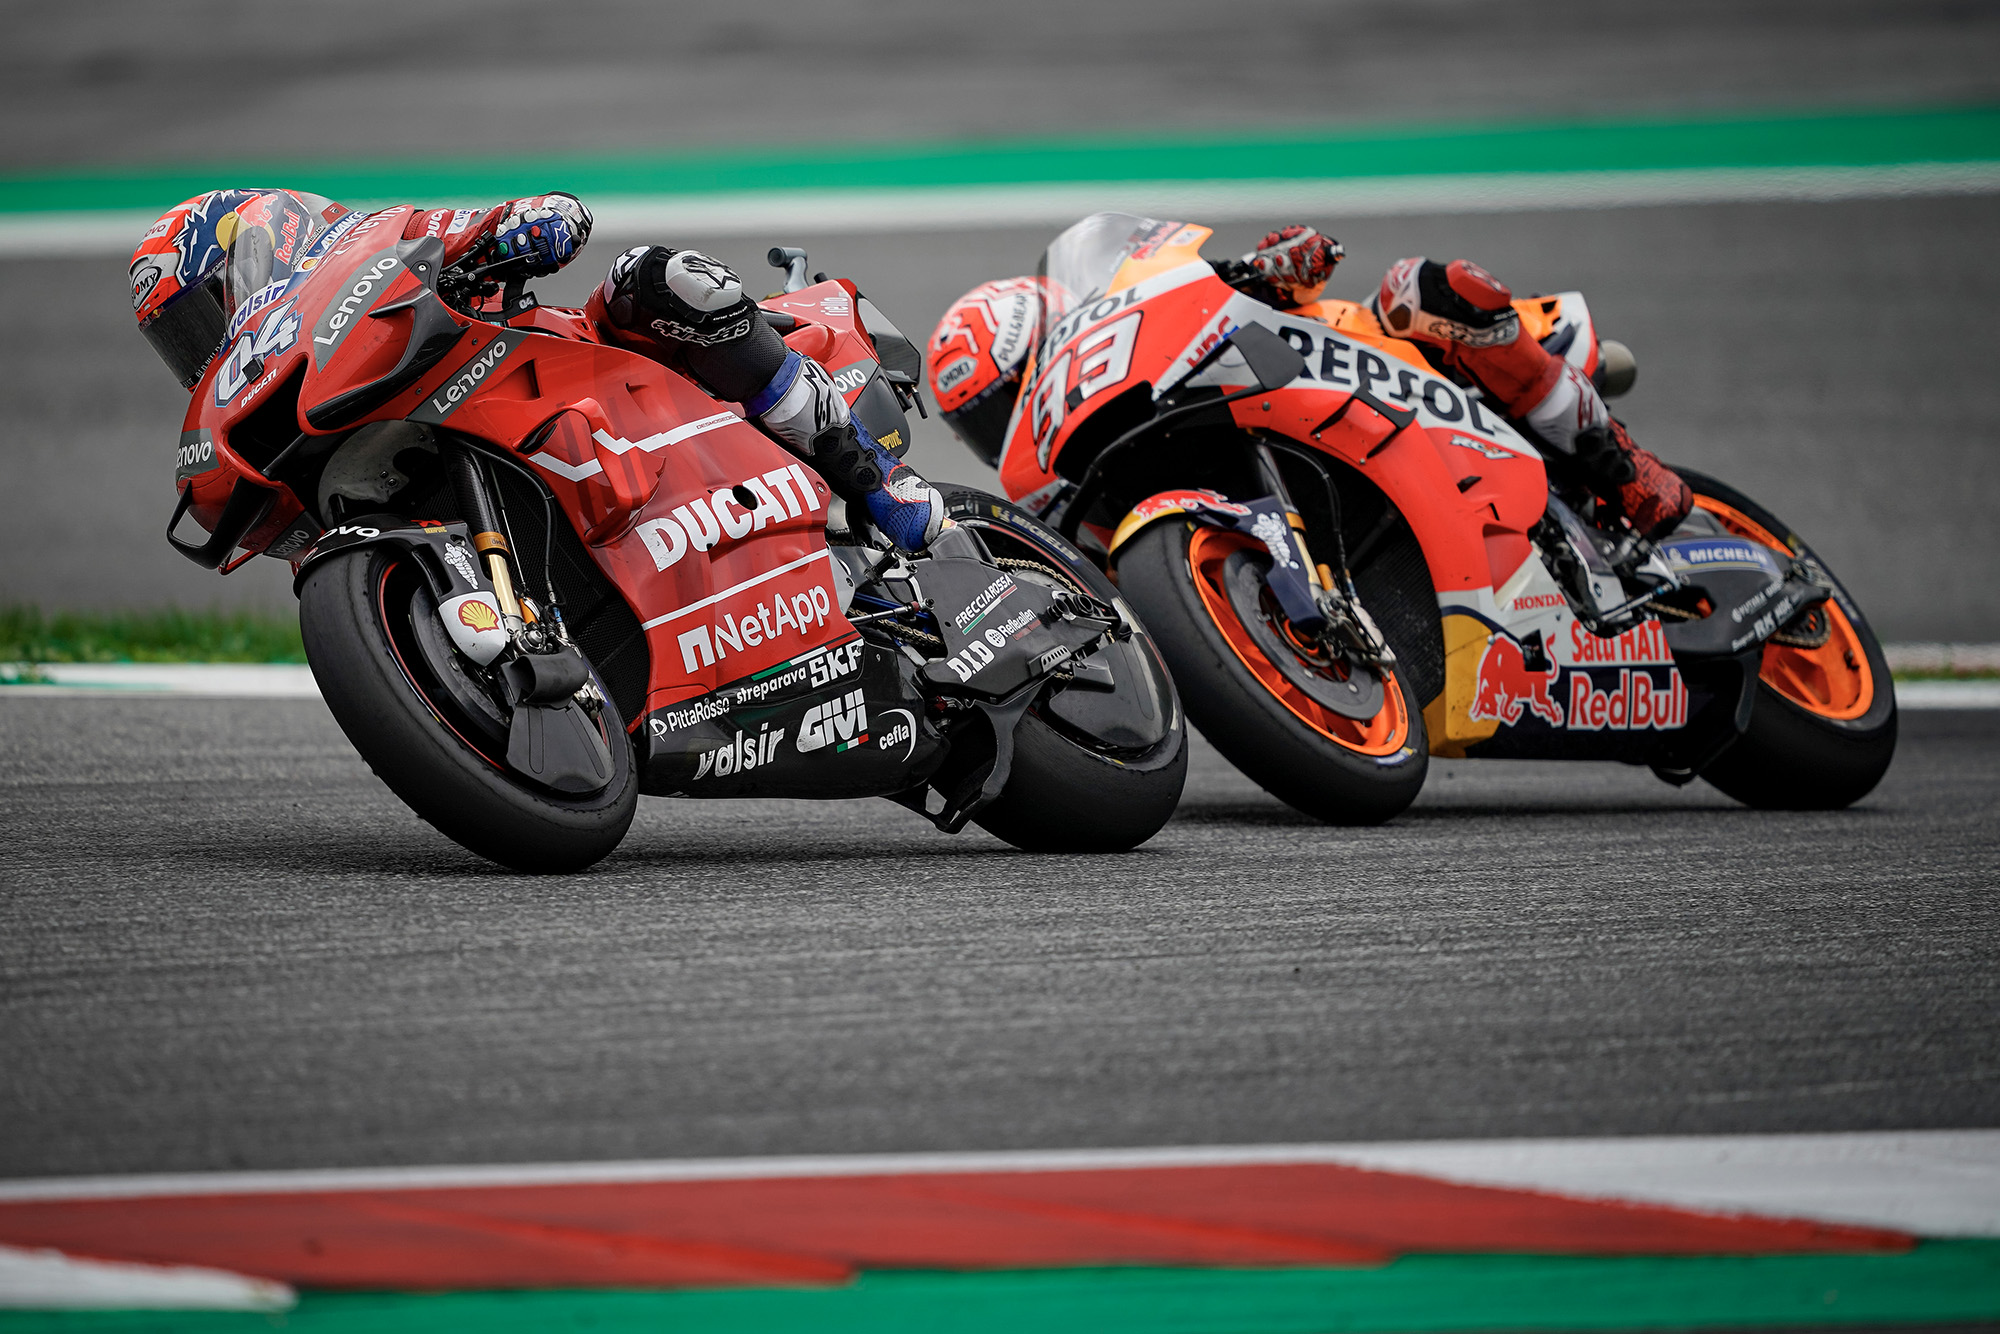 Dovizioso ahead of Marc Marquez in 2019 at the Red Bull Ring